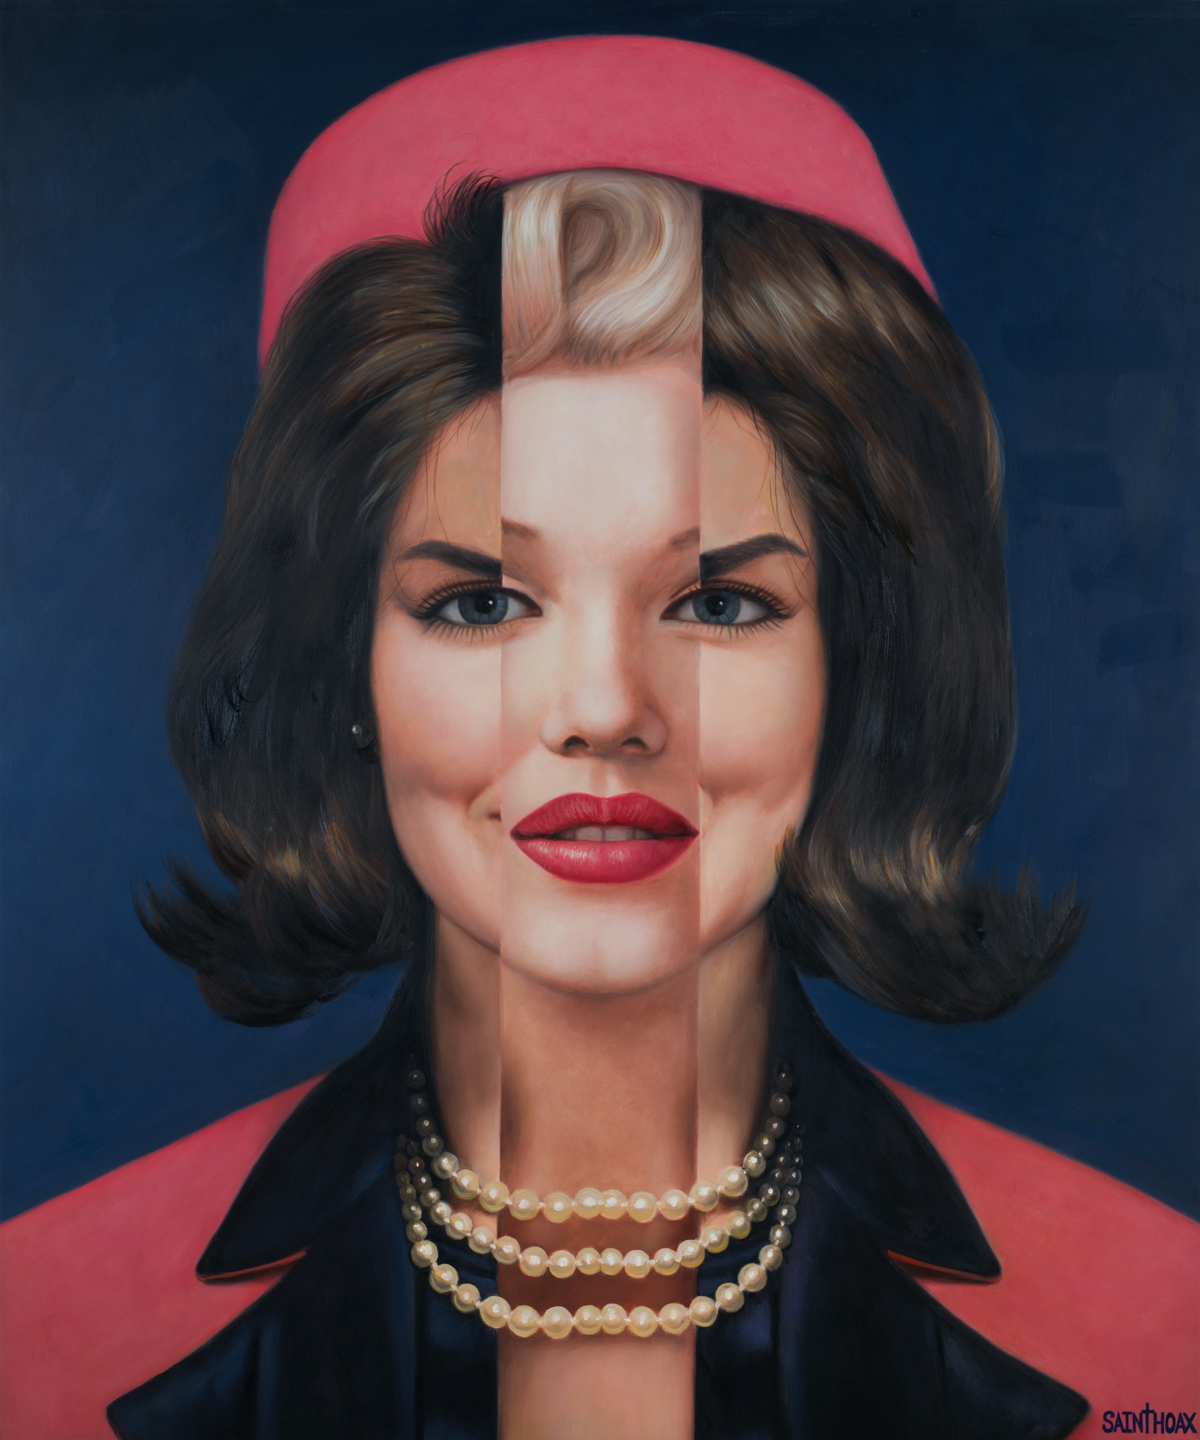 JACKIE MONROE - 2016Oil on canvas100 x 120 cm (39.3 x 47.2 in)$21,000